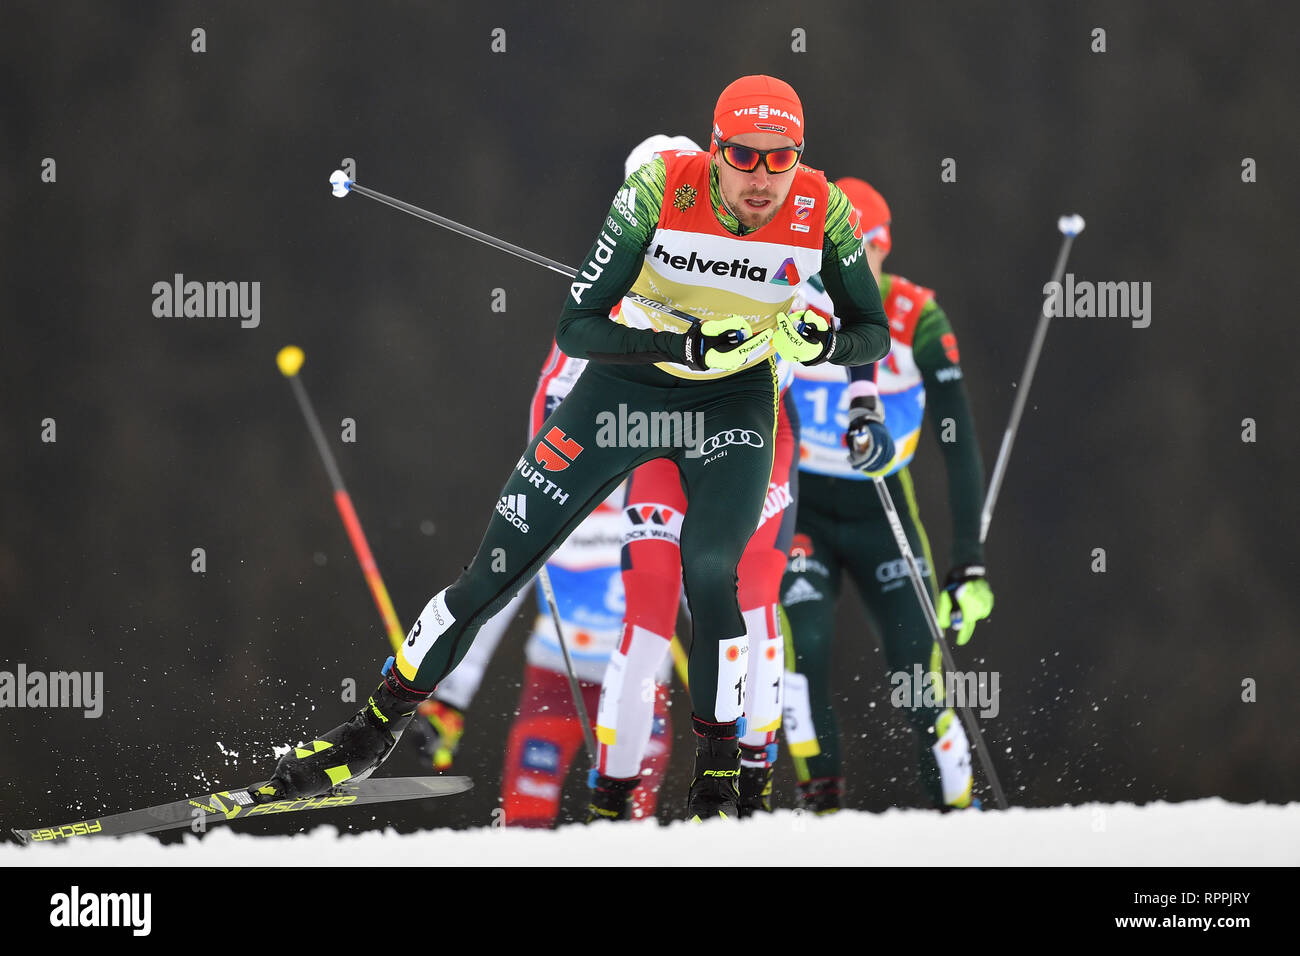 Johannes RYDZEK (GER), action, leads the pulk, group